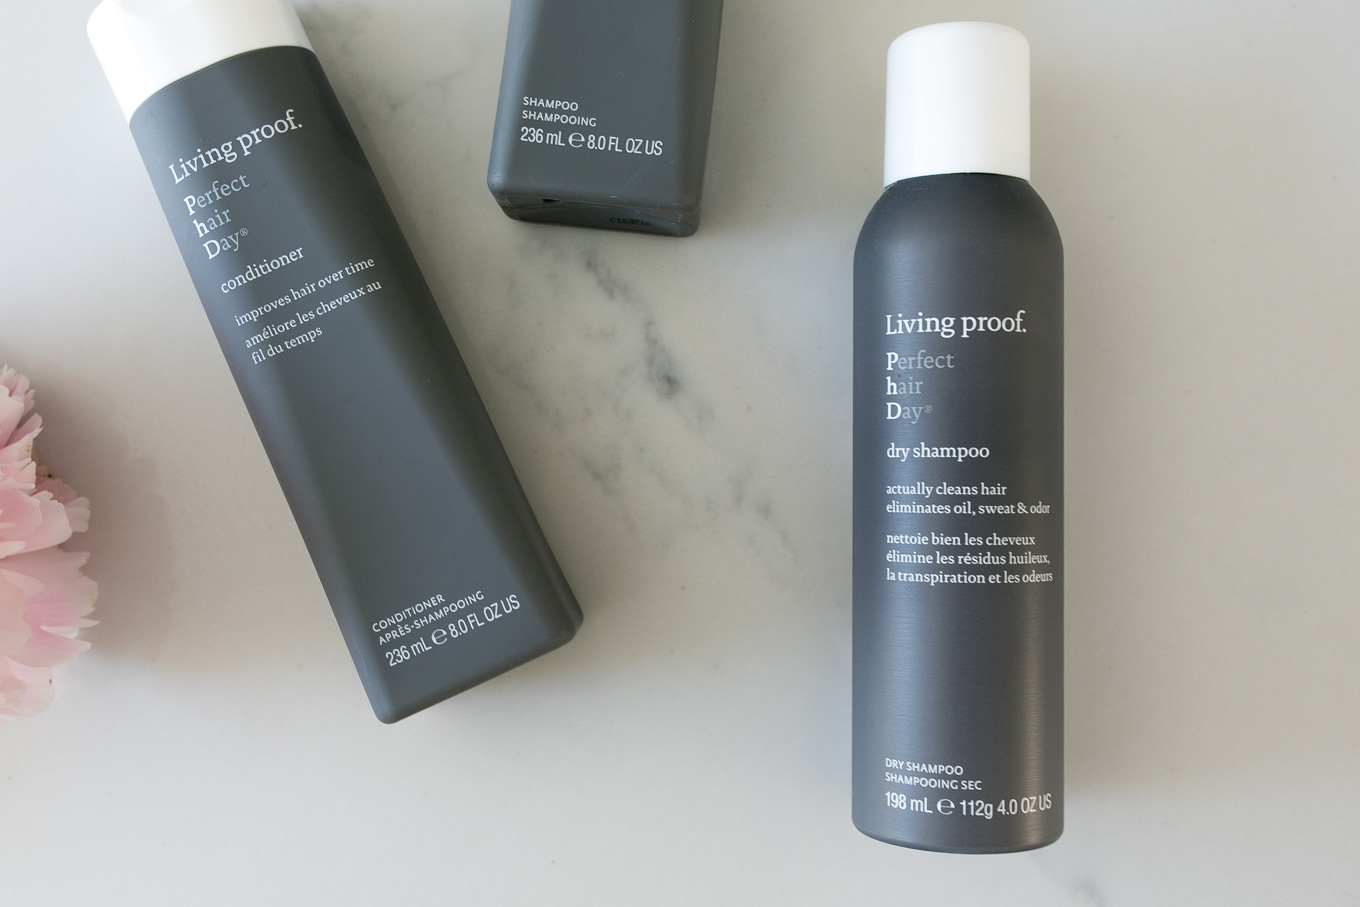 Blogger Daryl-Ann Denner of Something Beautiful shares her favorite hair care products to give full and healthy hair including Living Proof Dry Shampoo